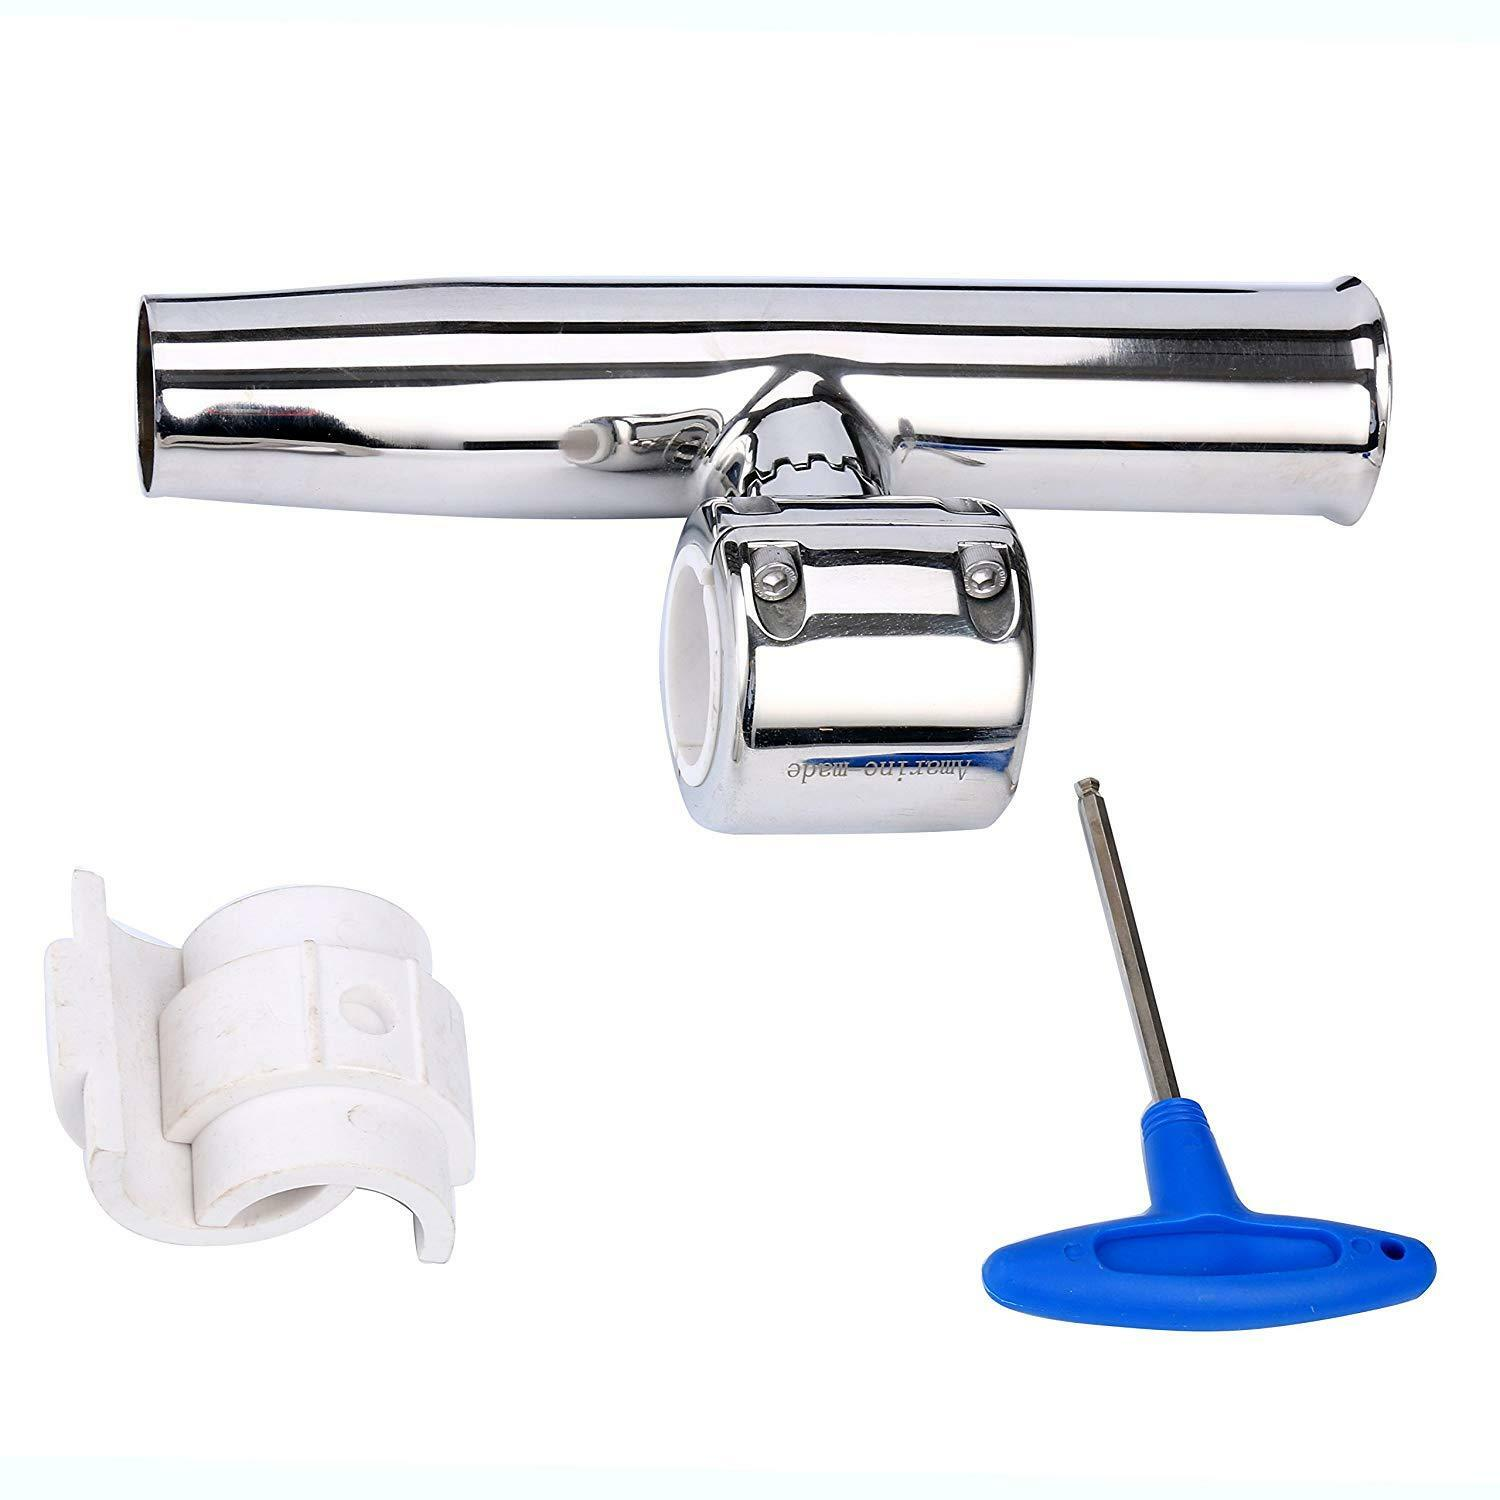 Stainless Fishing Clamp On  Adjustable Rod Holder for Rails greenical Horizontal  outlet sale